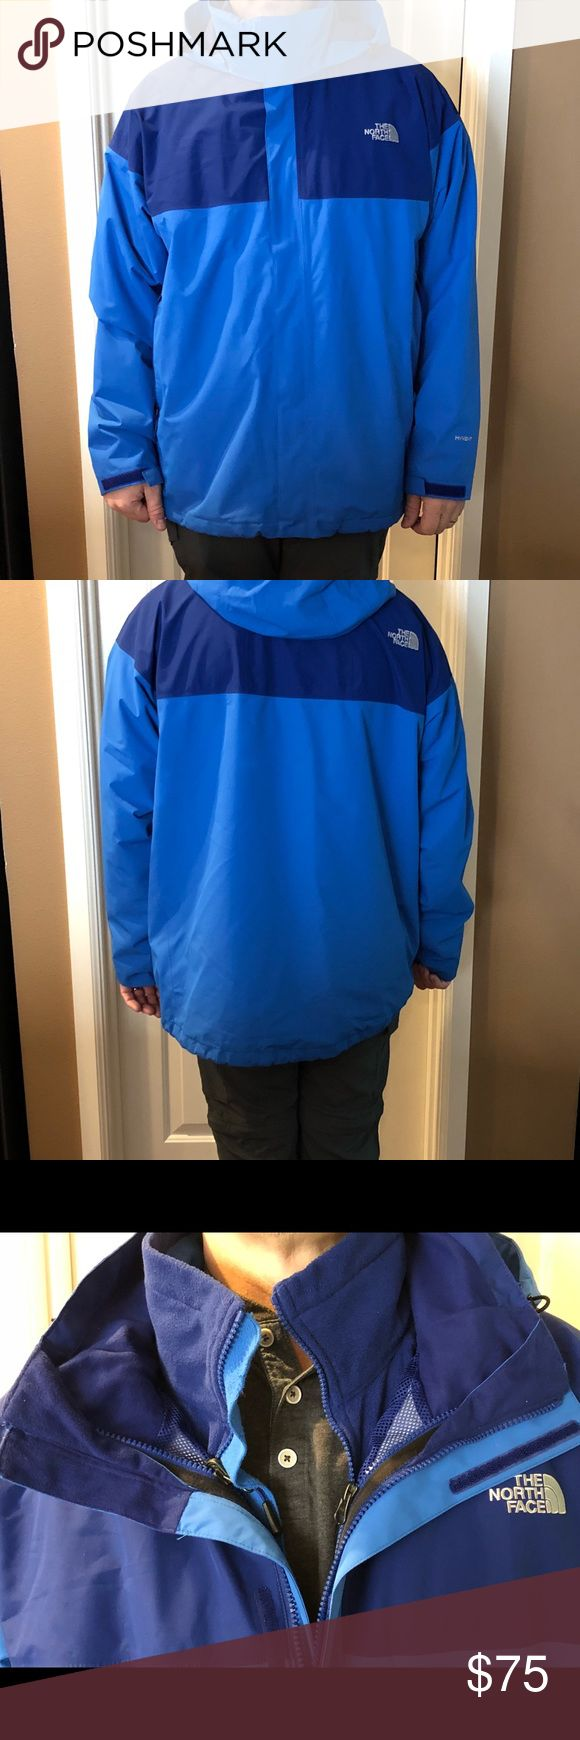 The North Face Men's 3in1 Ski Jacket Mens Ski Jacket, water resistant shell with a fleece liner jacket.  Fleece jacket zips inside.  Wear shell alone, with fleece zipped in or fleece alone.  In Perfect consist ion, only worn one time. The North Face Jackets & Coats Ski & Snowboard